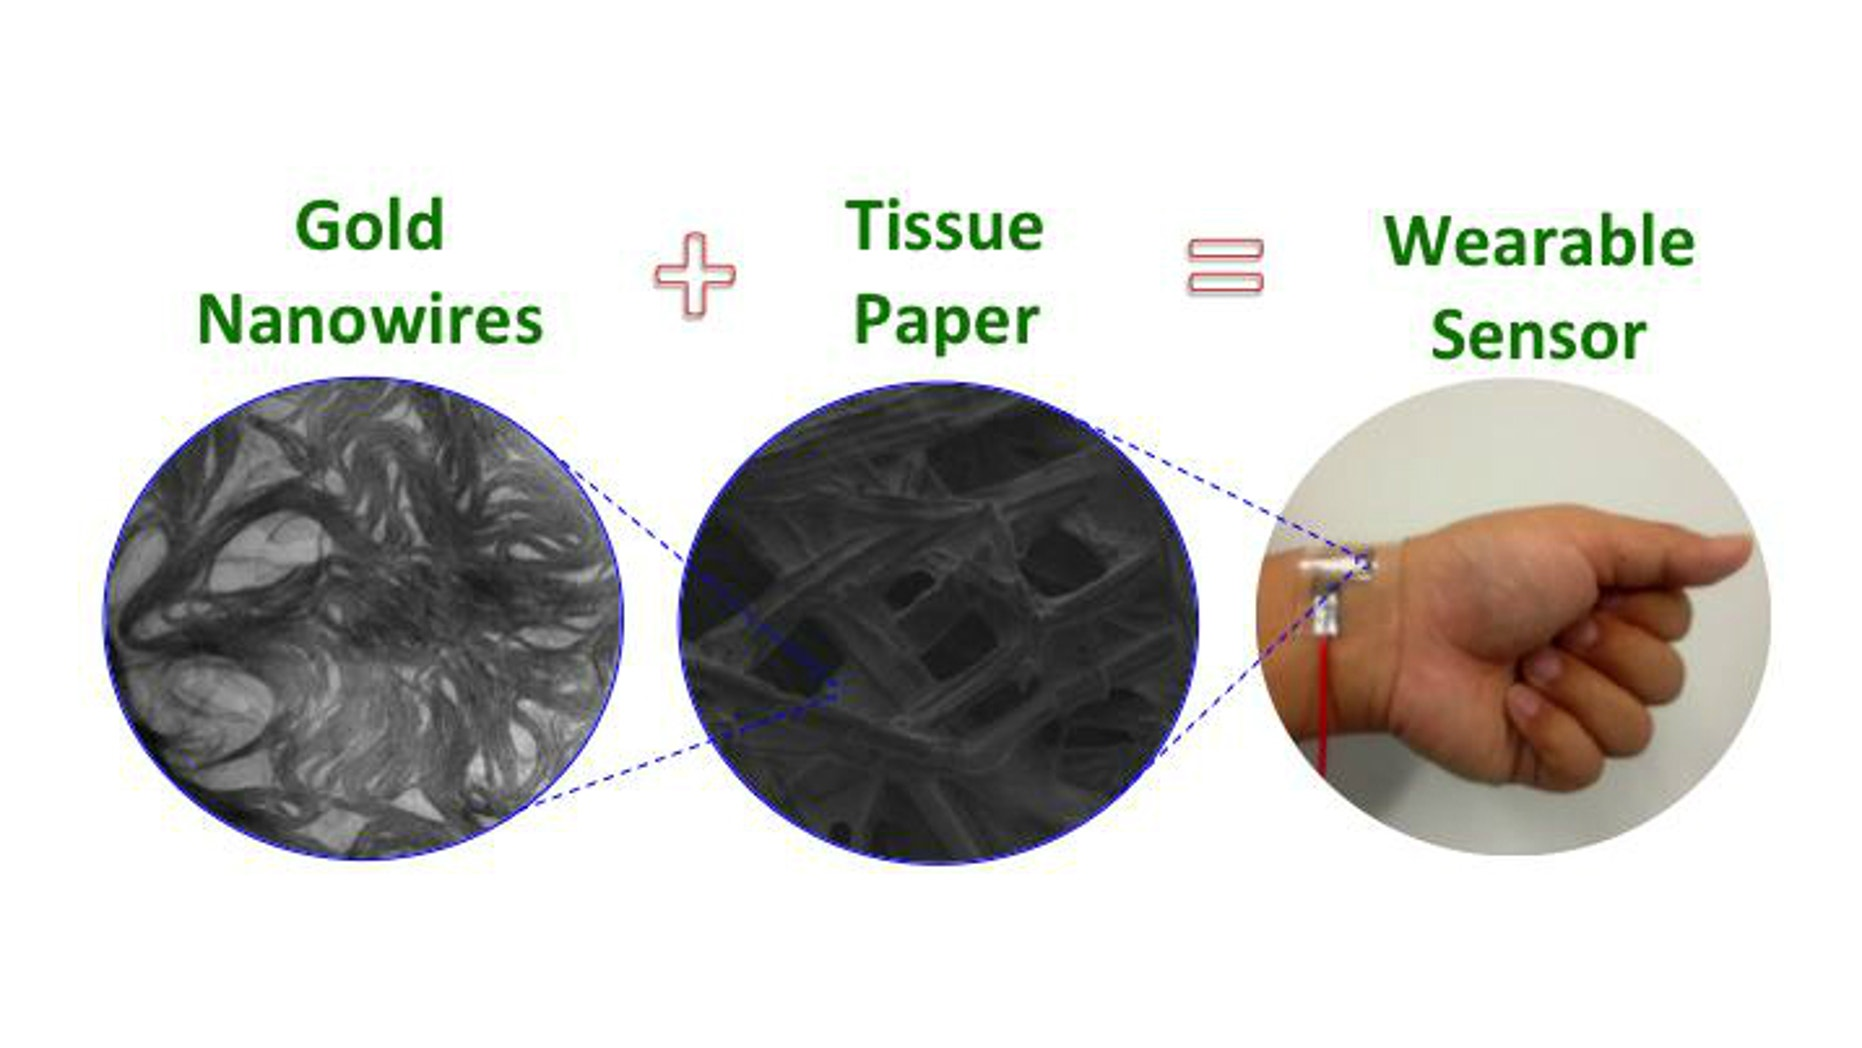 A flexible pressure sensor enables monitoring of tiny forces from artery wrist blood pulses and acoustic waves.